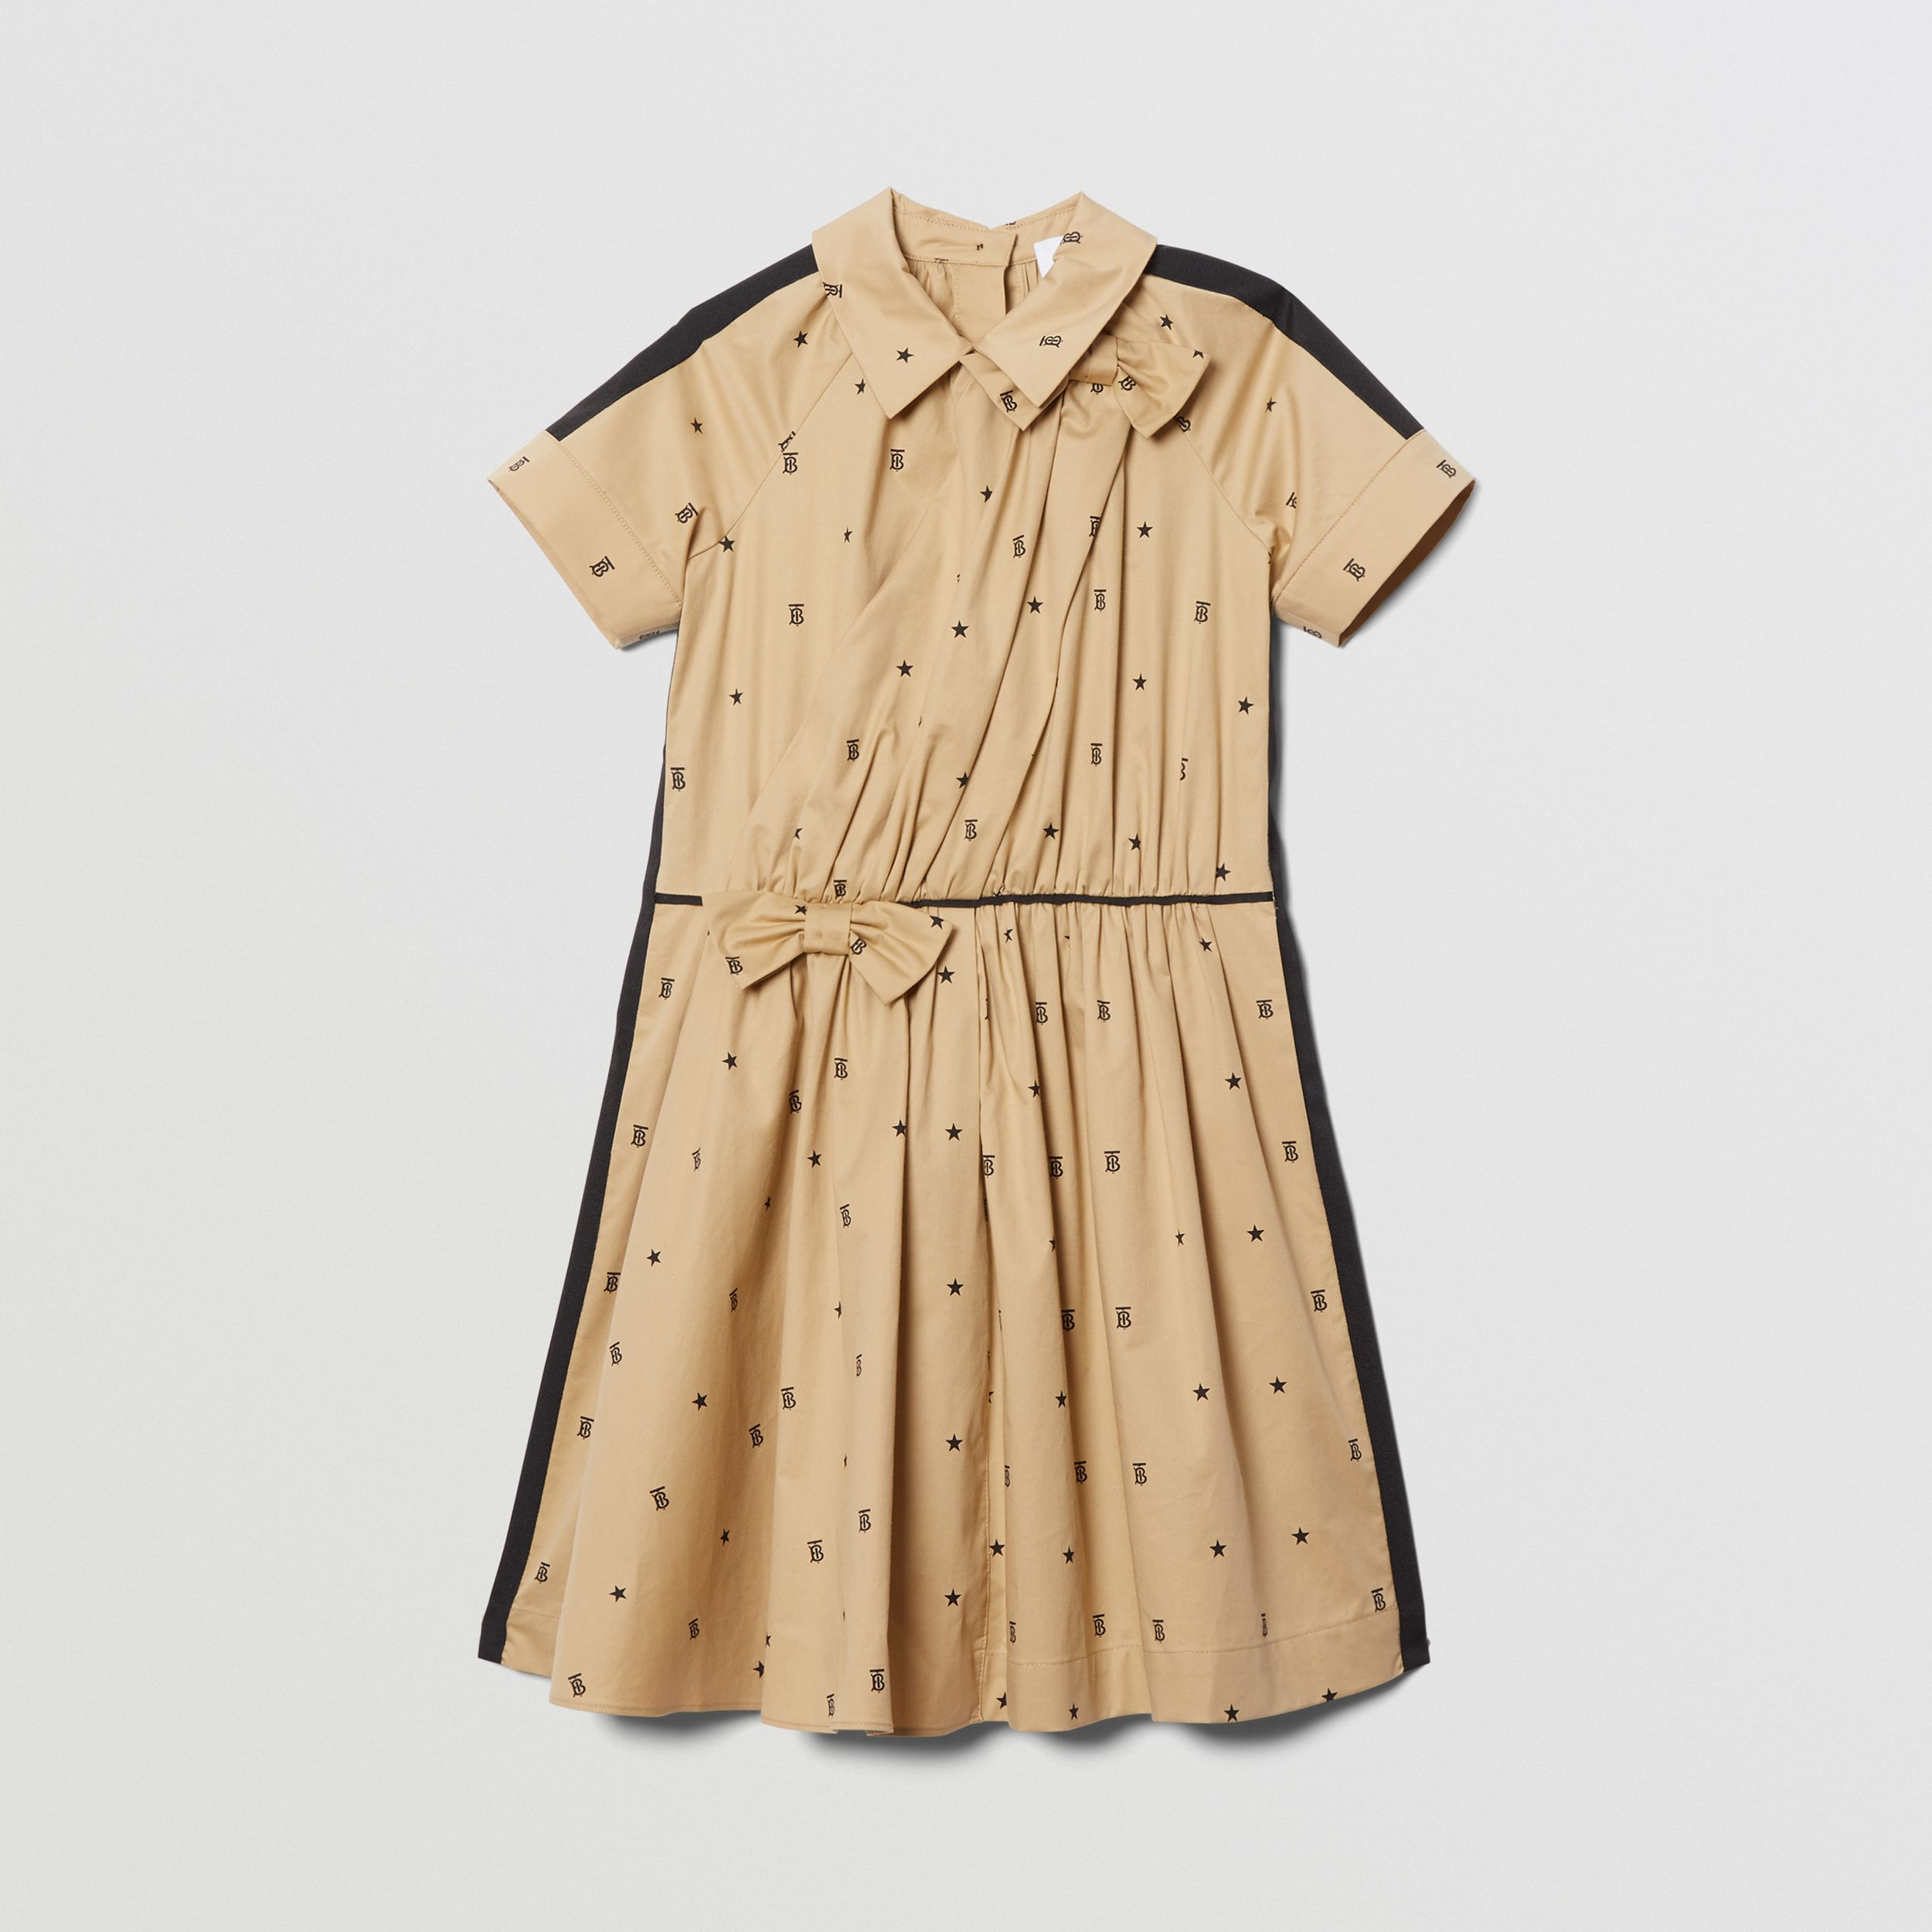 Star and Monogram Motif Stretch Cotton Dress in Sand | Burberry - 1